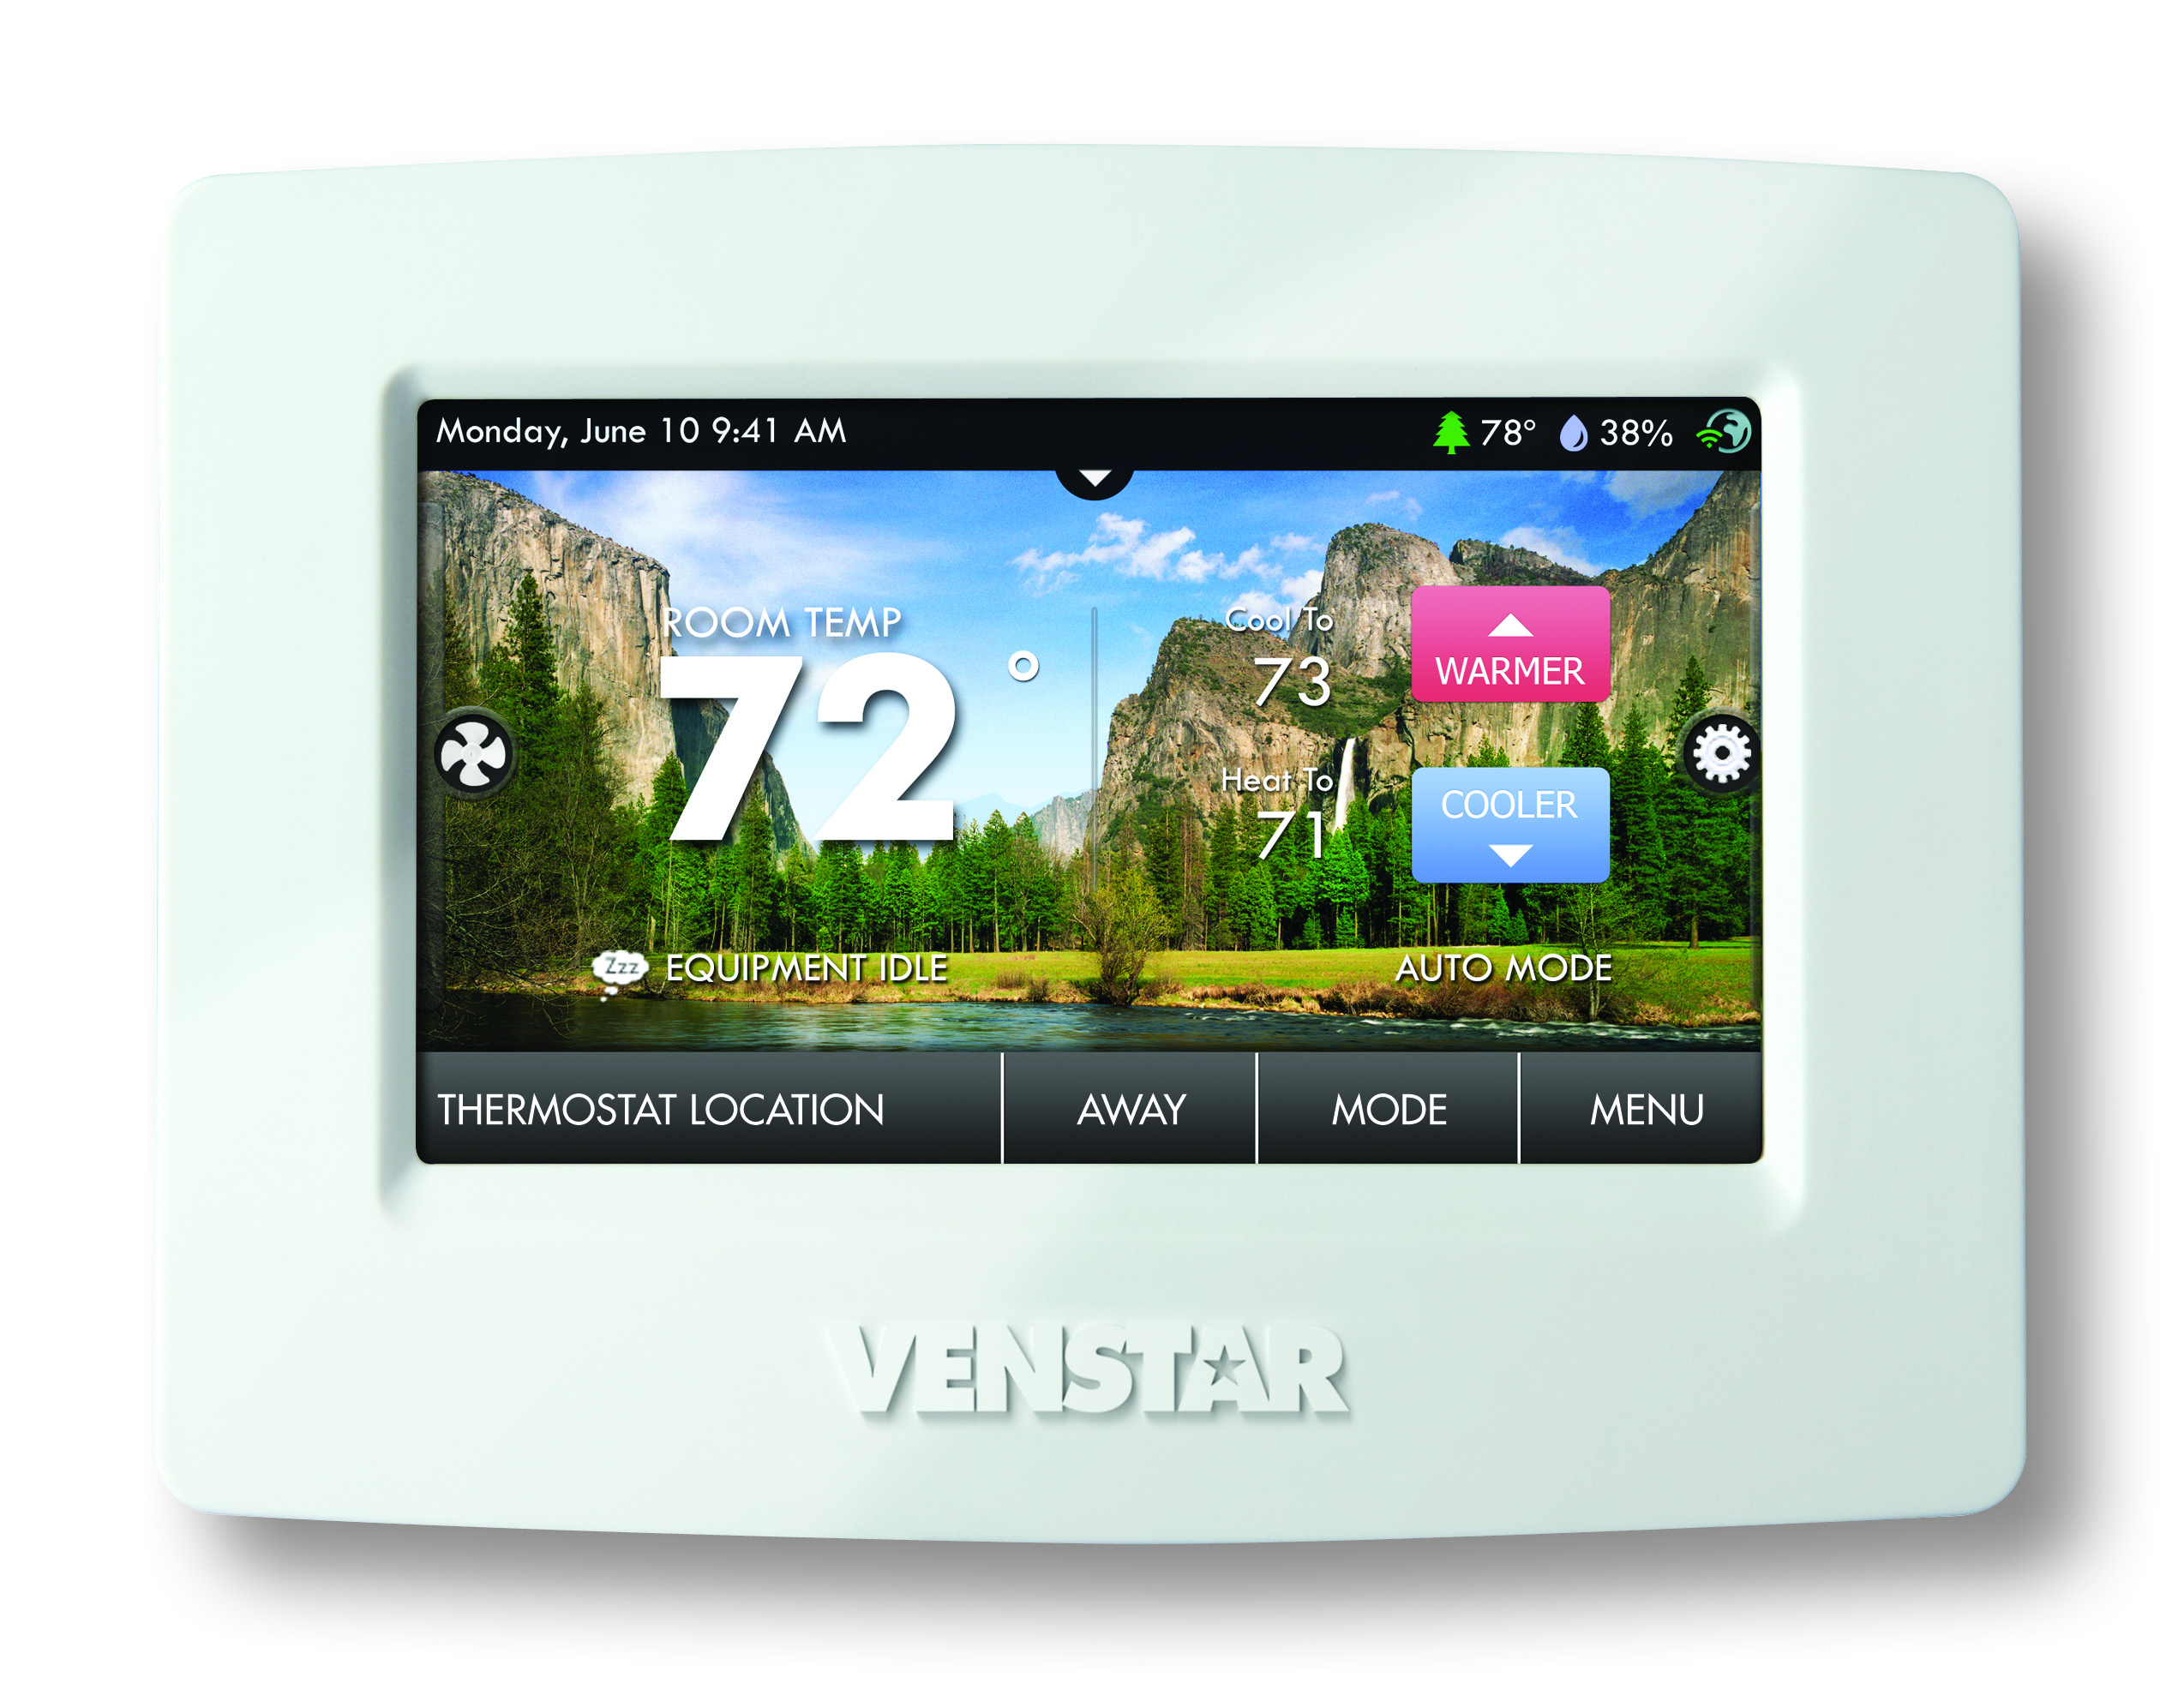 WiFi a/c thermostat without a cloud